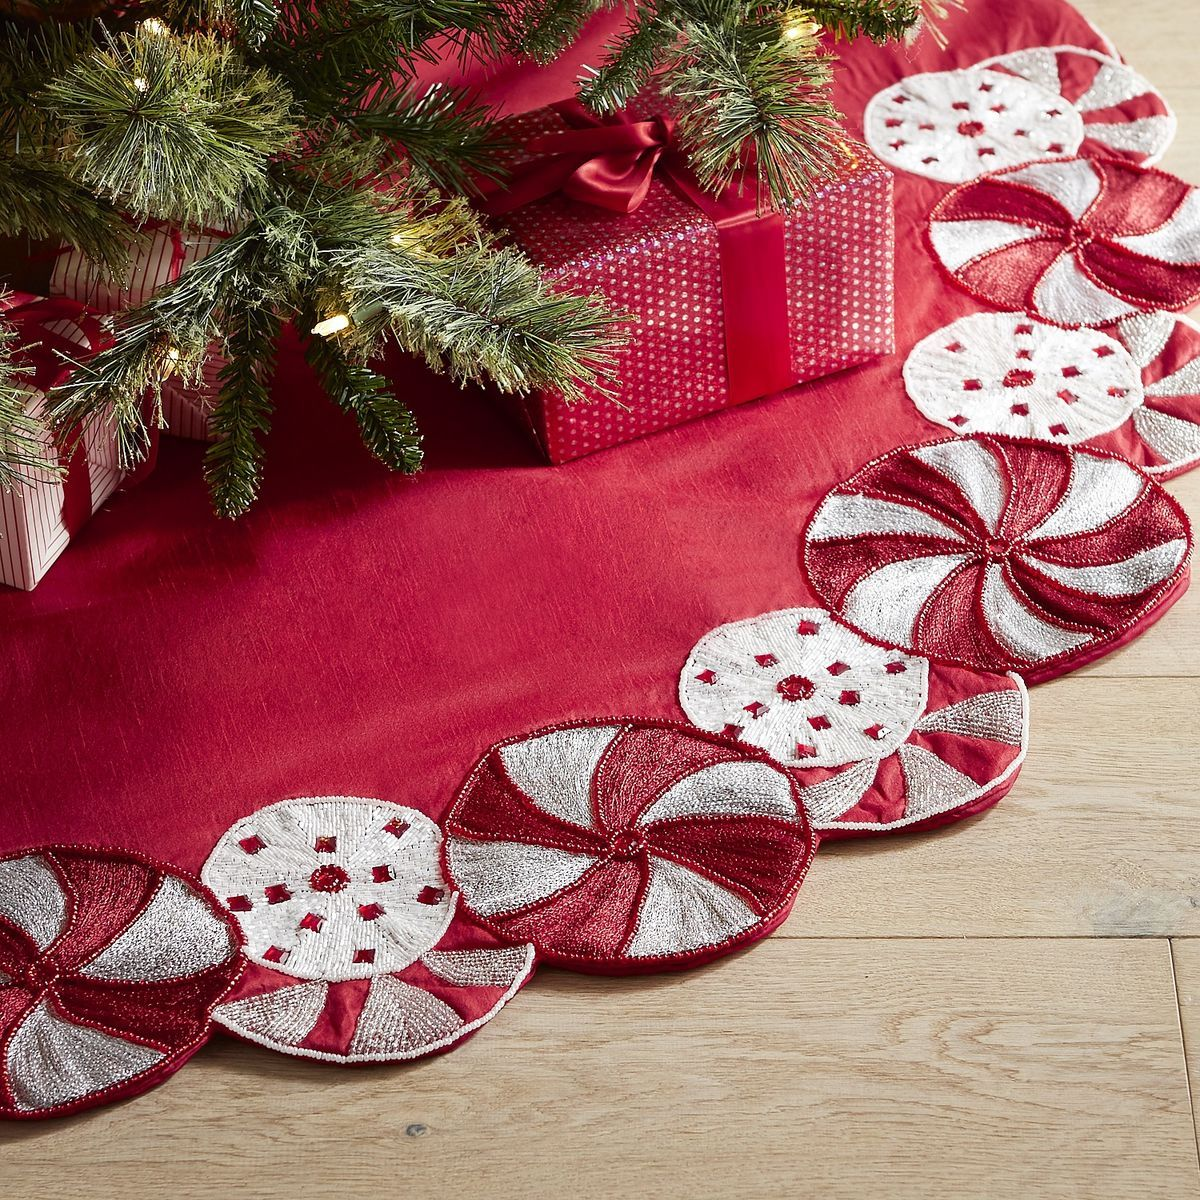 Beaded Peppermint Tree Skirt Christmas tree skirts